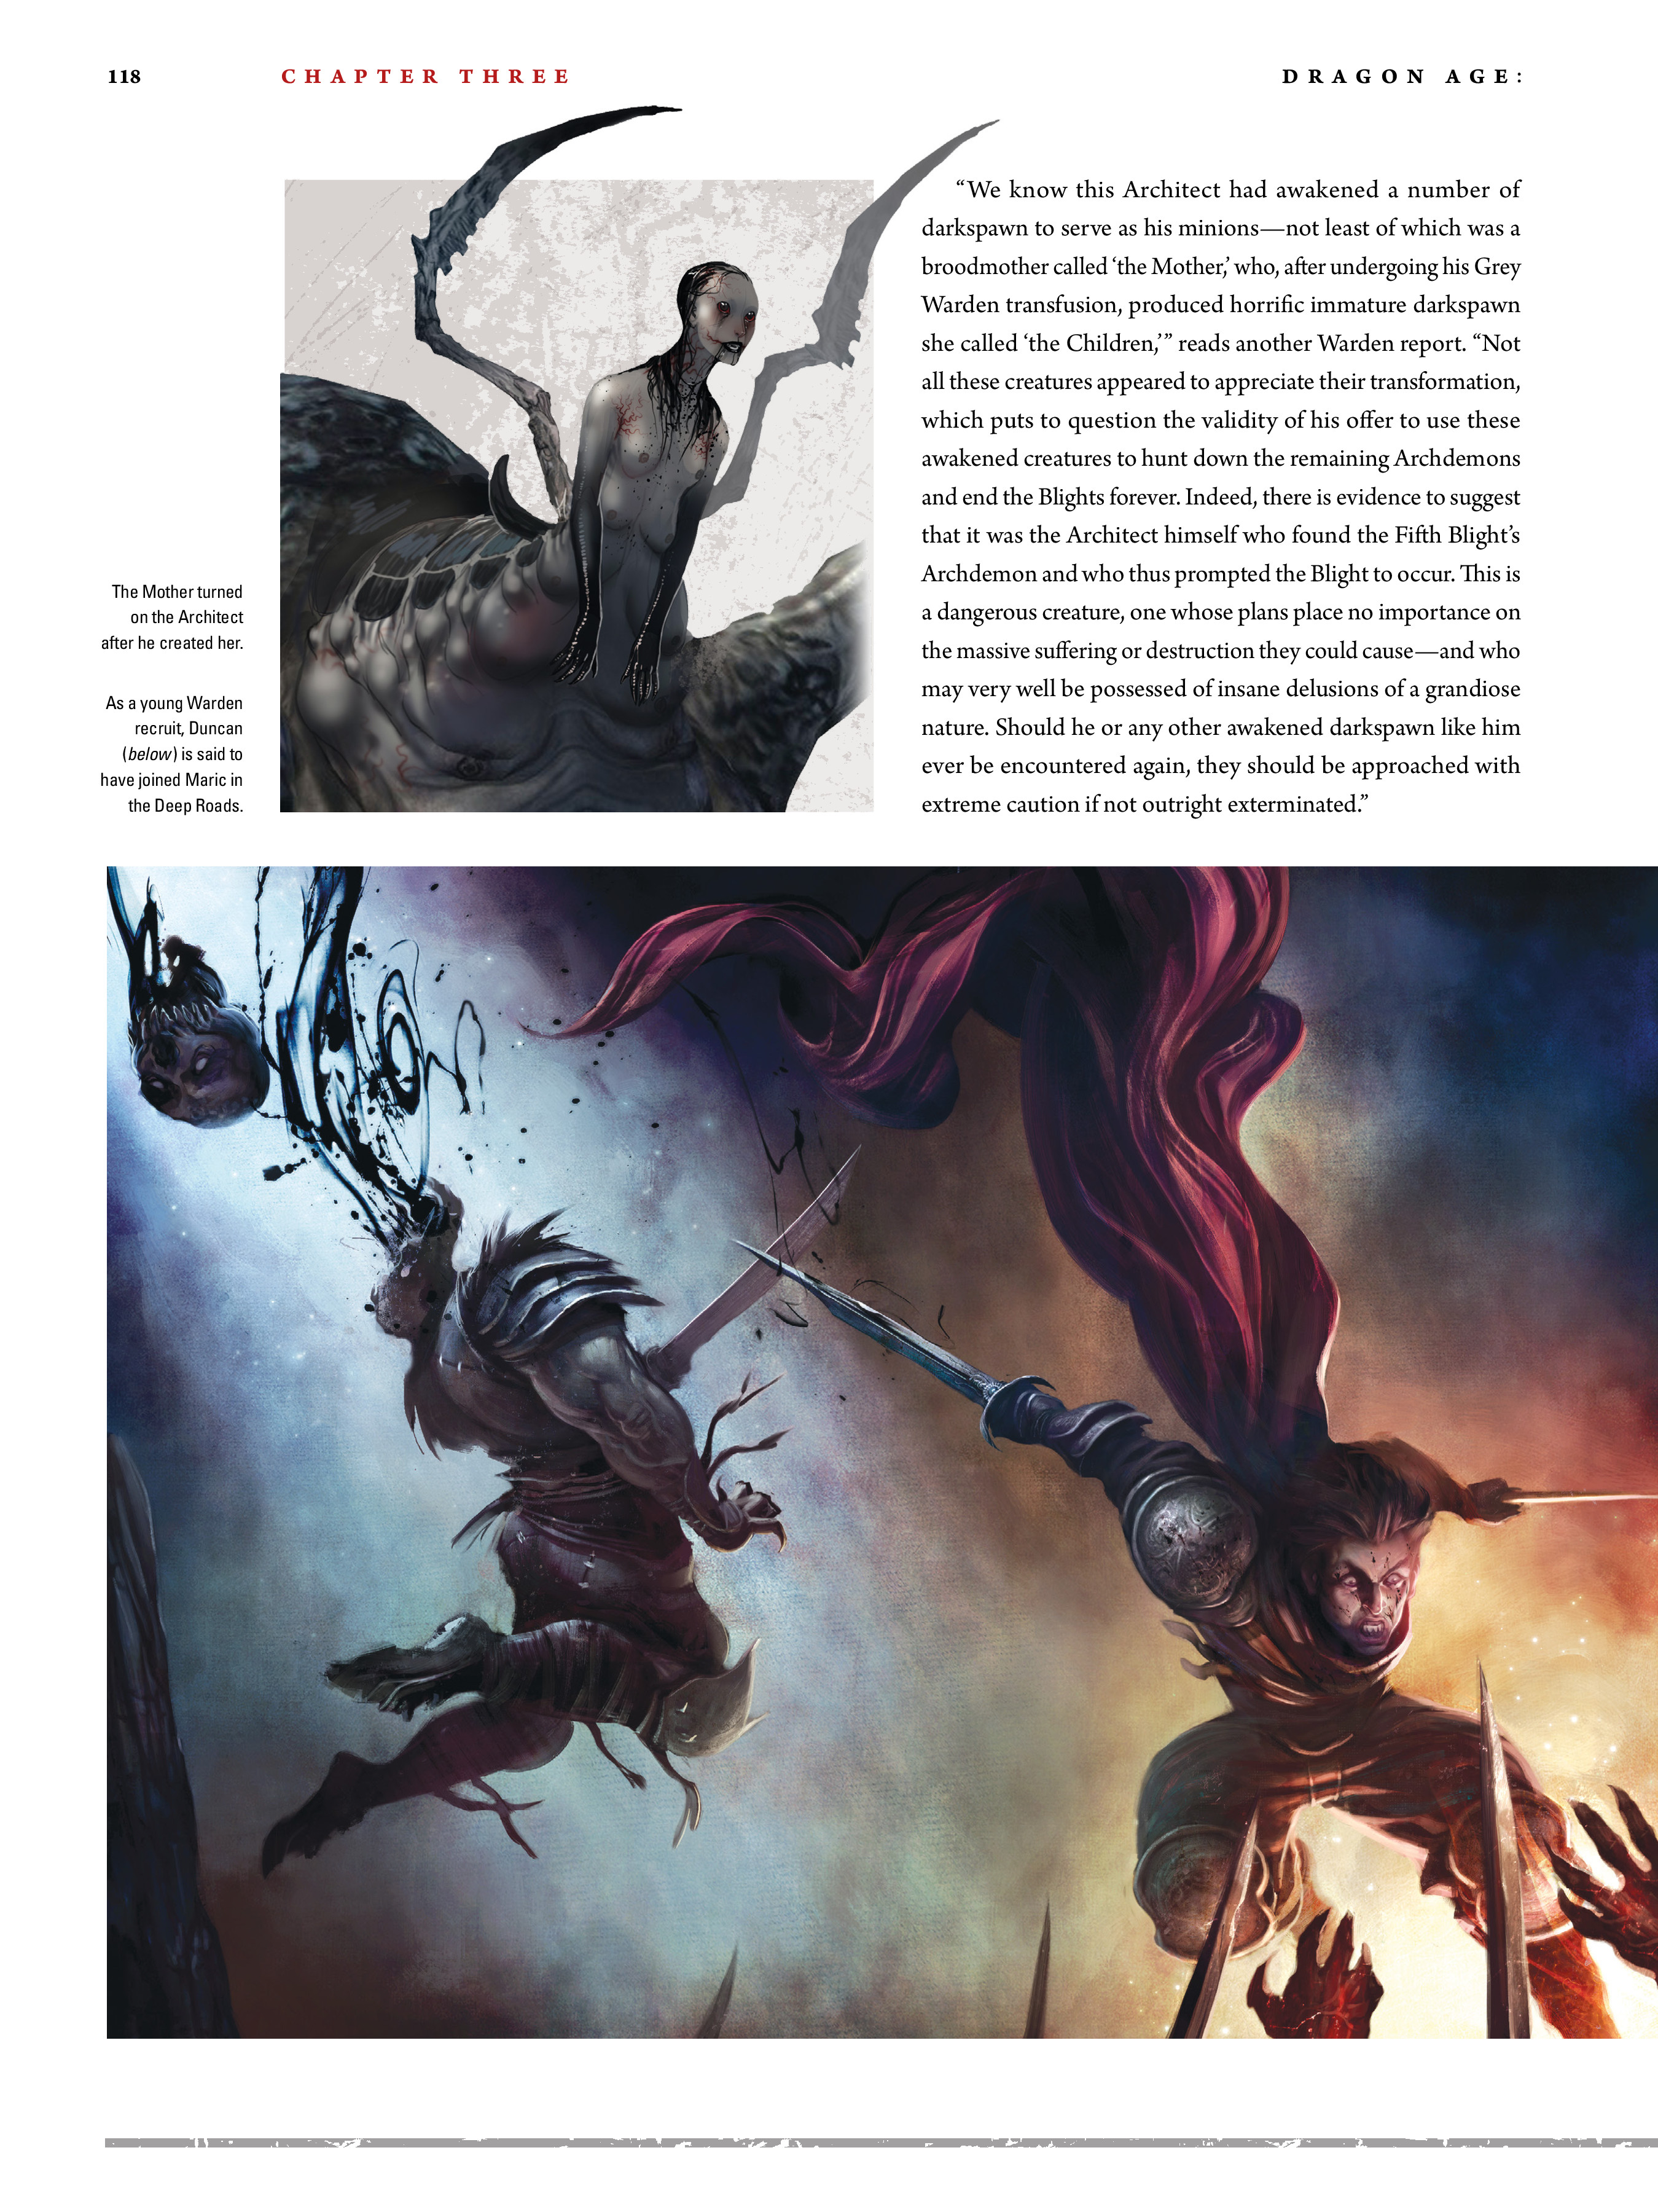 Read online Dragon Age: The World of Thedas comic -  Issue # TPB 2 - 114